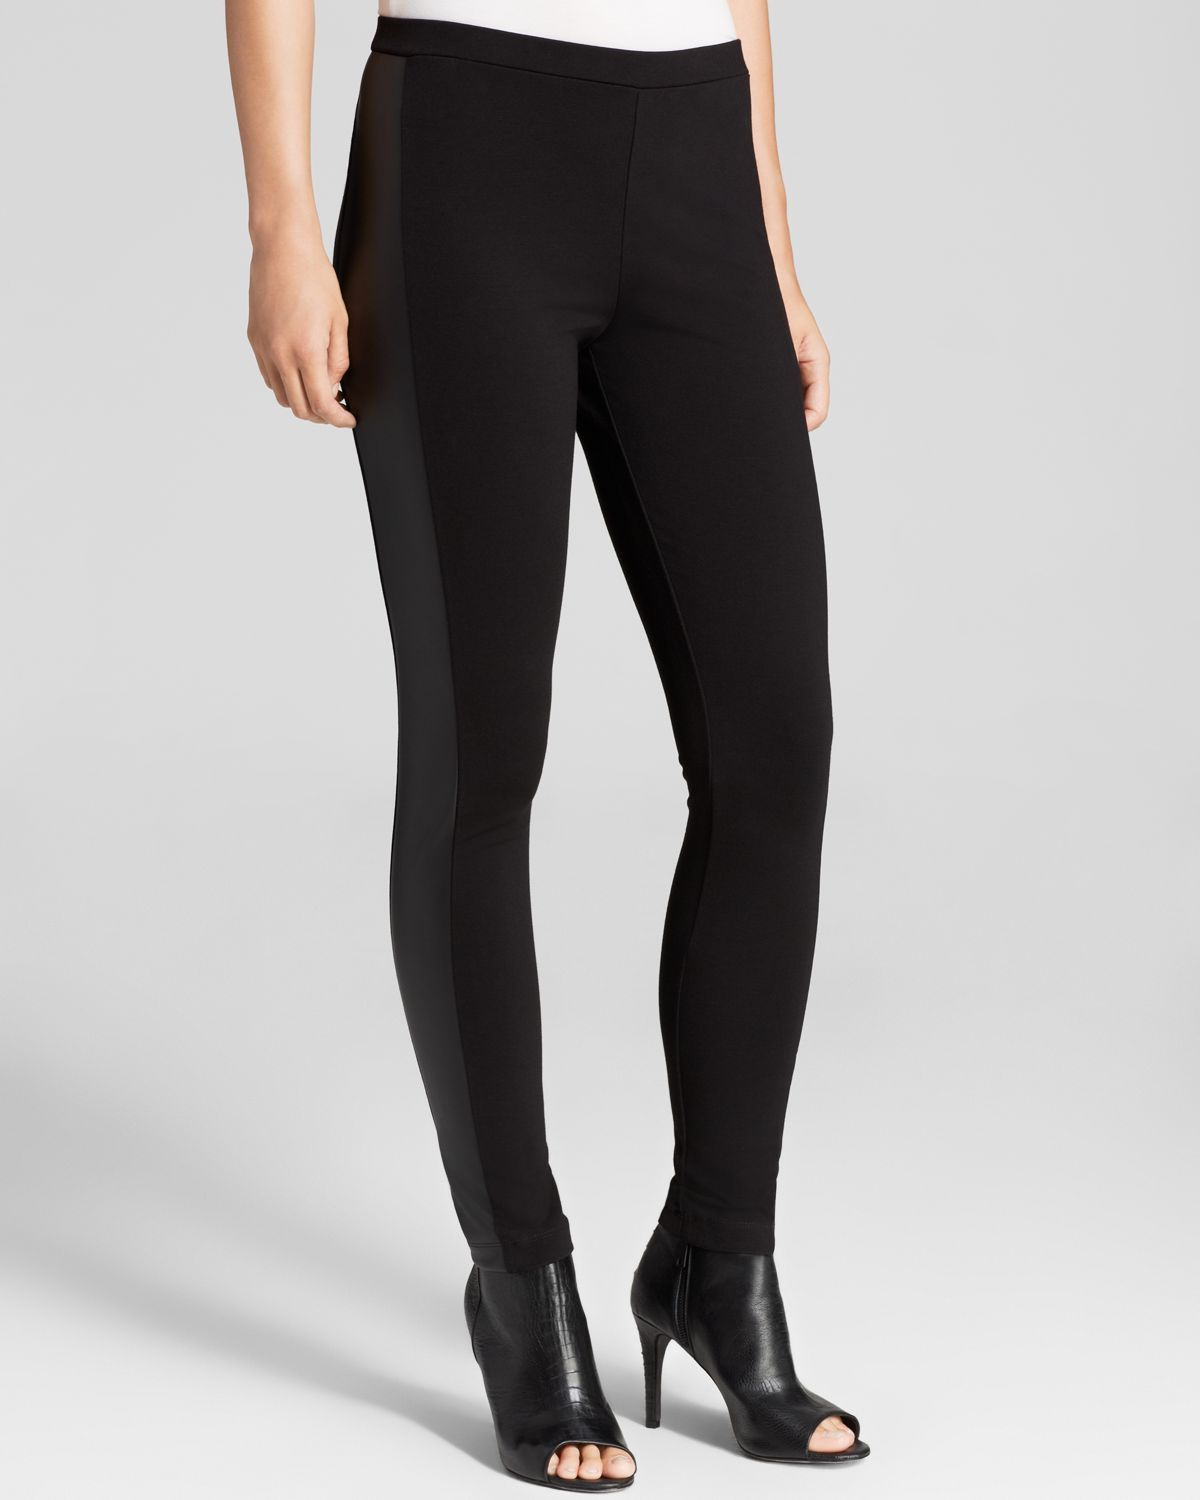 a33f10528d401 Gallery. Previously sold at: Bloomingdale's · Women's Faux Leather Pants ...